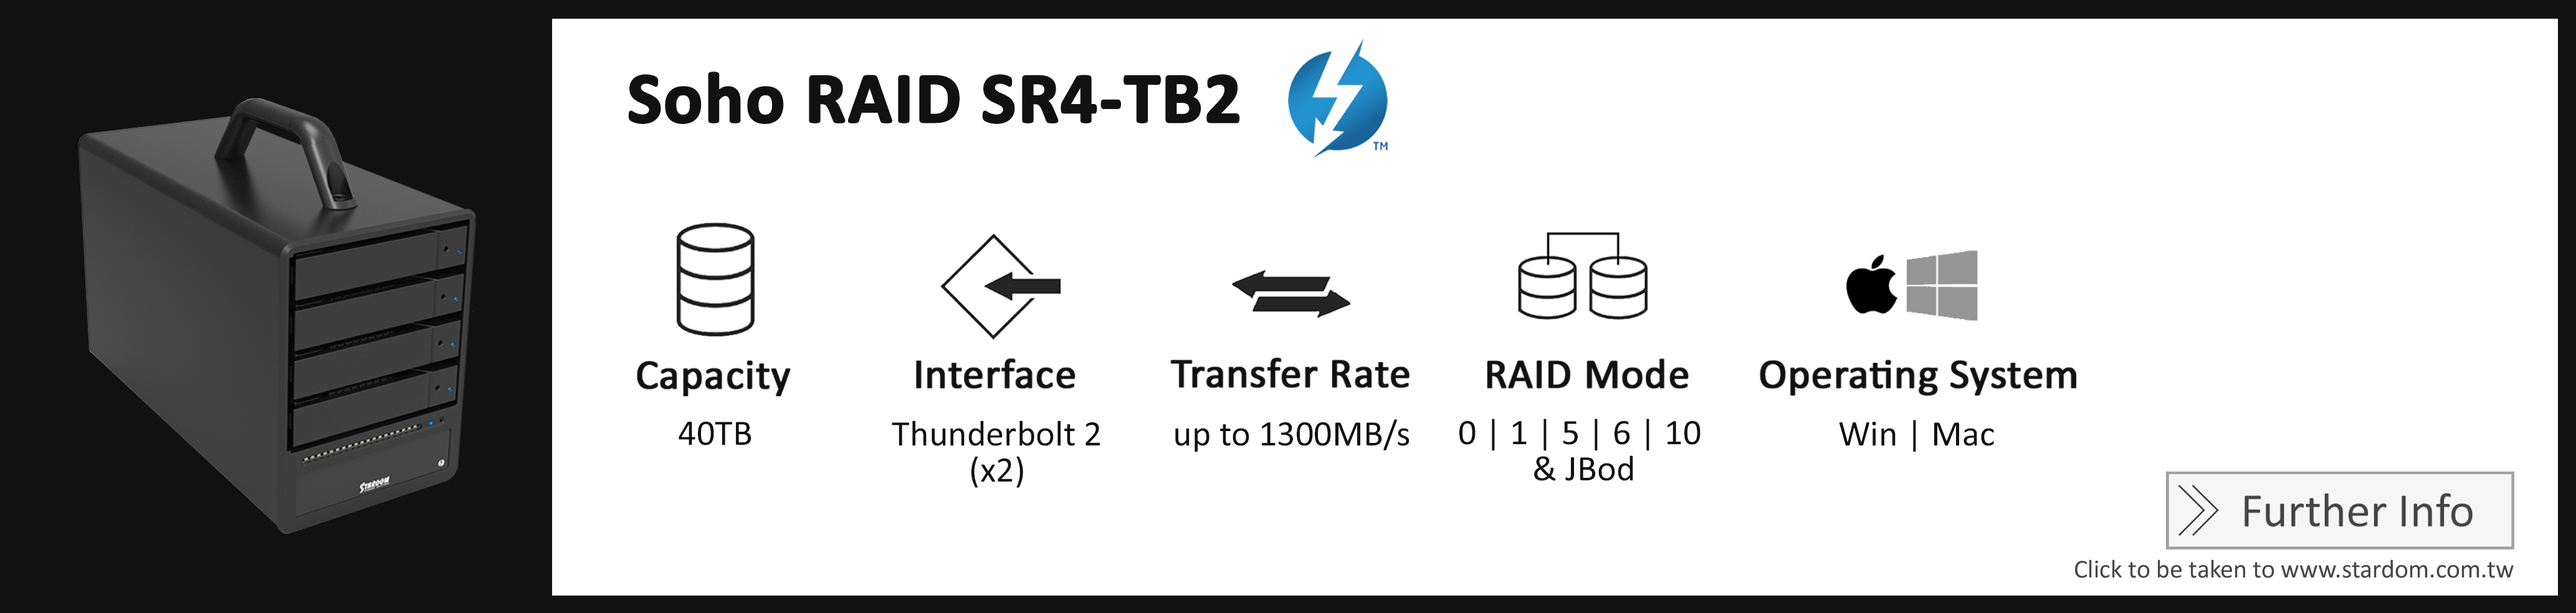 Stardom_SR4-TB2_Cost Effective RAID Storage